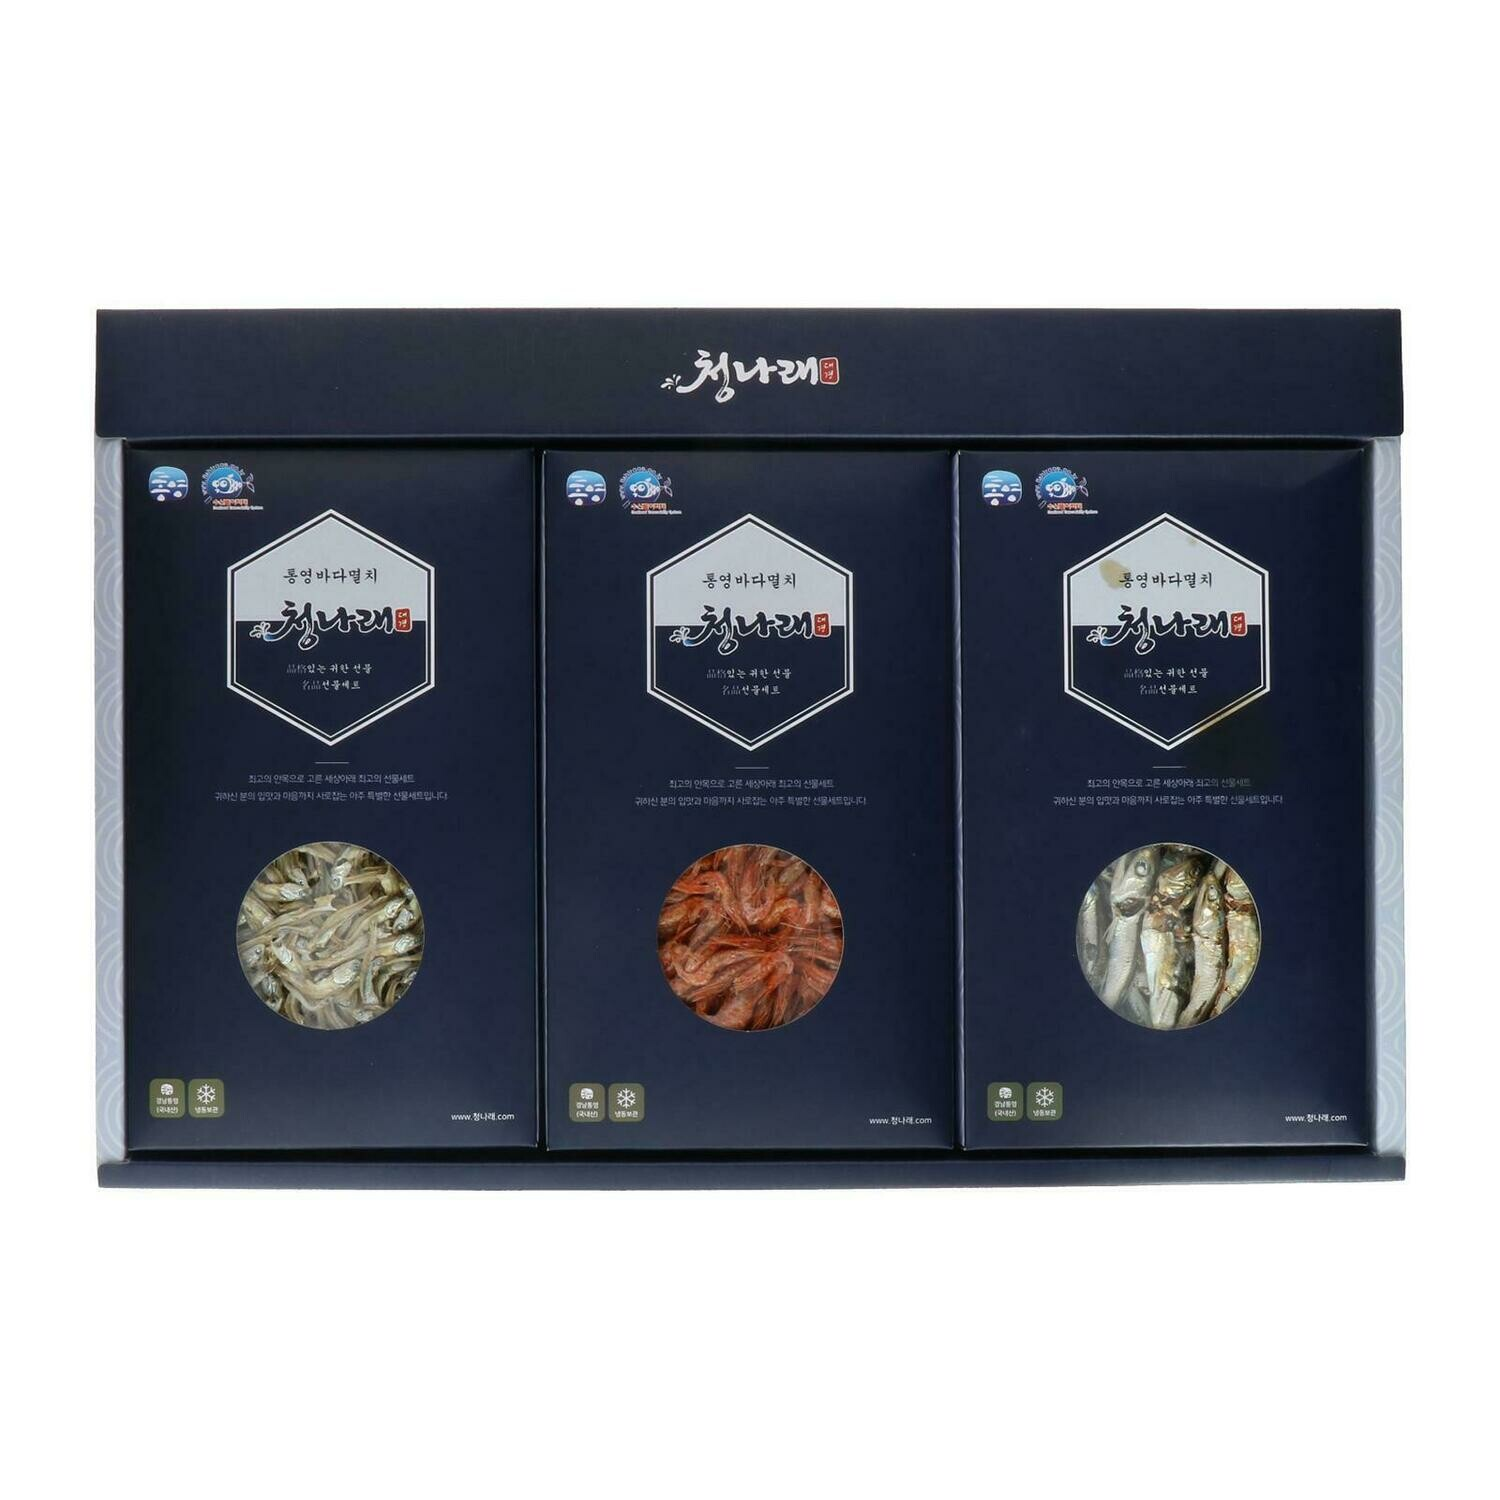 Dried Anchovy & Shrimp Gift SET